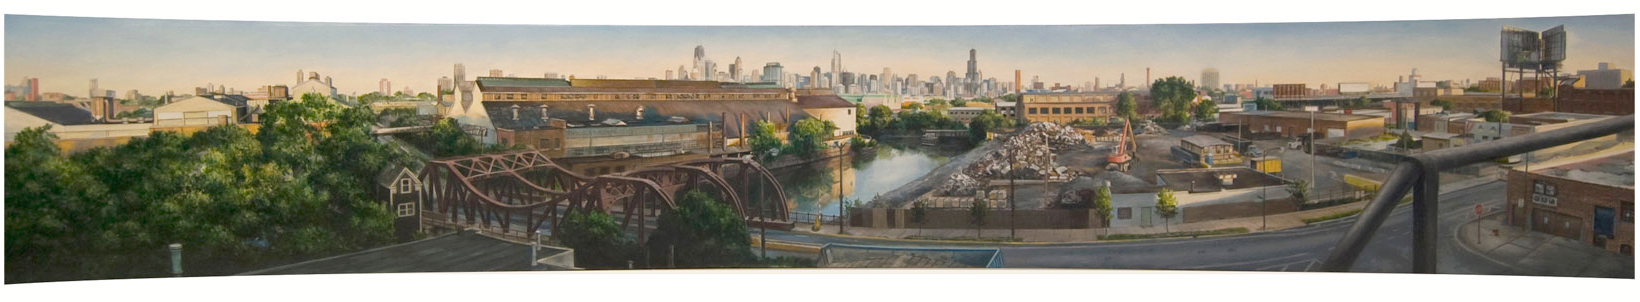 Panoramic View toward Finkl    Steel from Studio Fire Escape   2014  Oil on curved panel  8.5 x 58 inches